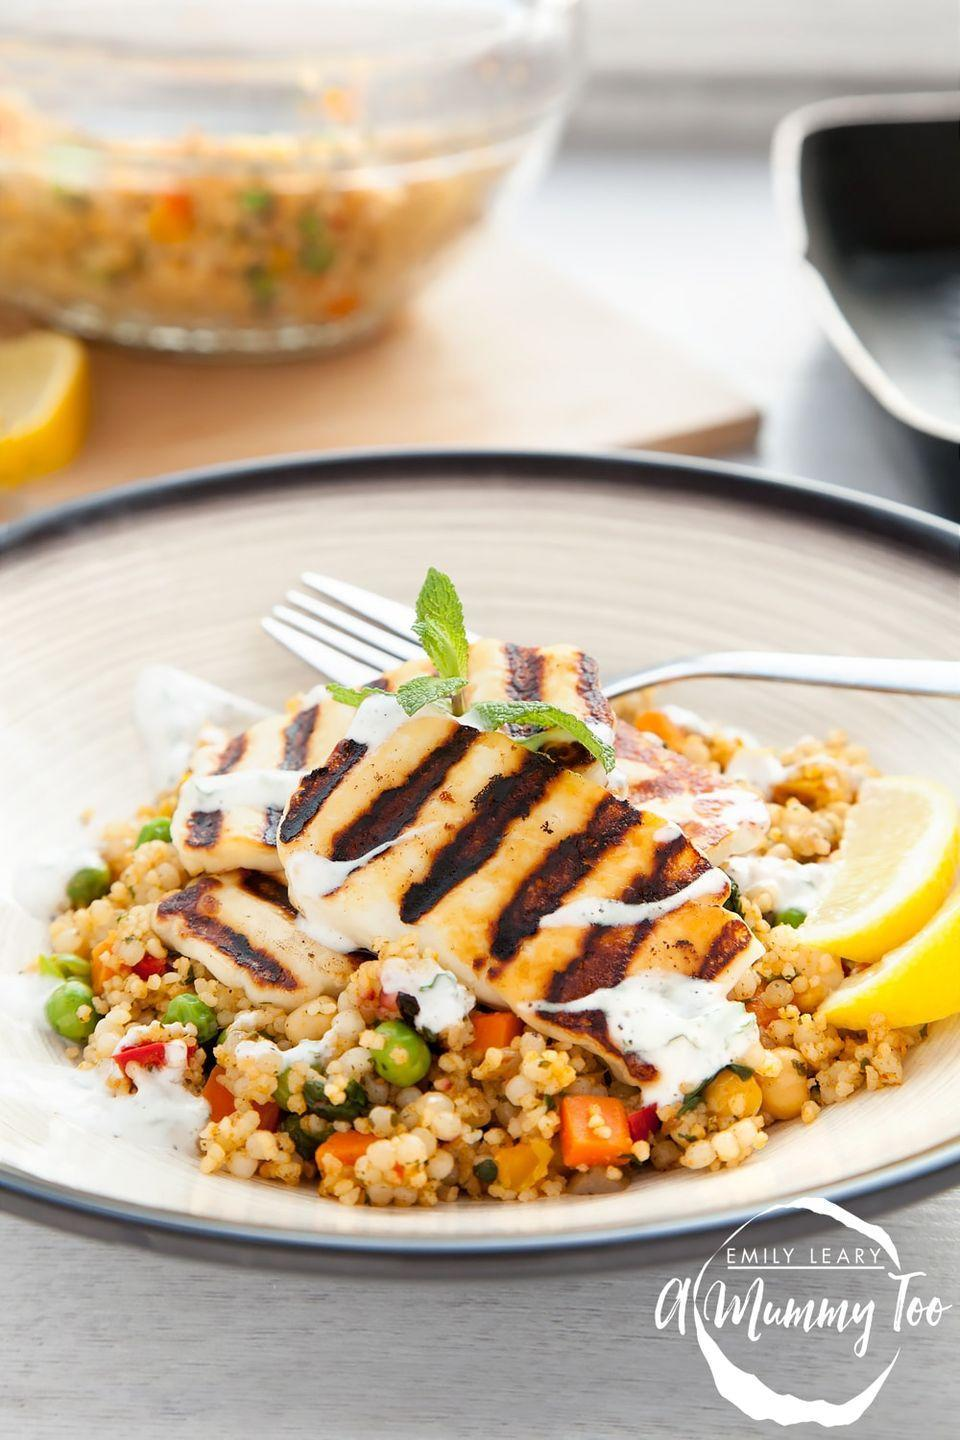 """<p>The yoghurt mint dressing simply makes this!</p><p>Get the <a href=""""https://www.amummytoo.co.uk/grilled-halloumi-vegetable-couscous-with-a-yoghurt-mint-dressing/"""" rel=""""nofollow noopener"""" target=""""_blank"""" data-ylk=""""slk:Grilled Halloumi Vegetable Couscous"""" class=""""link rapid-noclick-resp"""">Grilled Halloumi Vegetable Couscous</a> recipe. </p><p>Recipe from <a href=""""https://www.amummytoo.co.uk/"""" rel=""""nofollow noopener"""" target=""""_blank"""" data-ylk=""""slk:A Mummy Too"""" class=""""link rapid-noclick-resp"""">A Mummy Too</a>.</p>"""